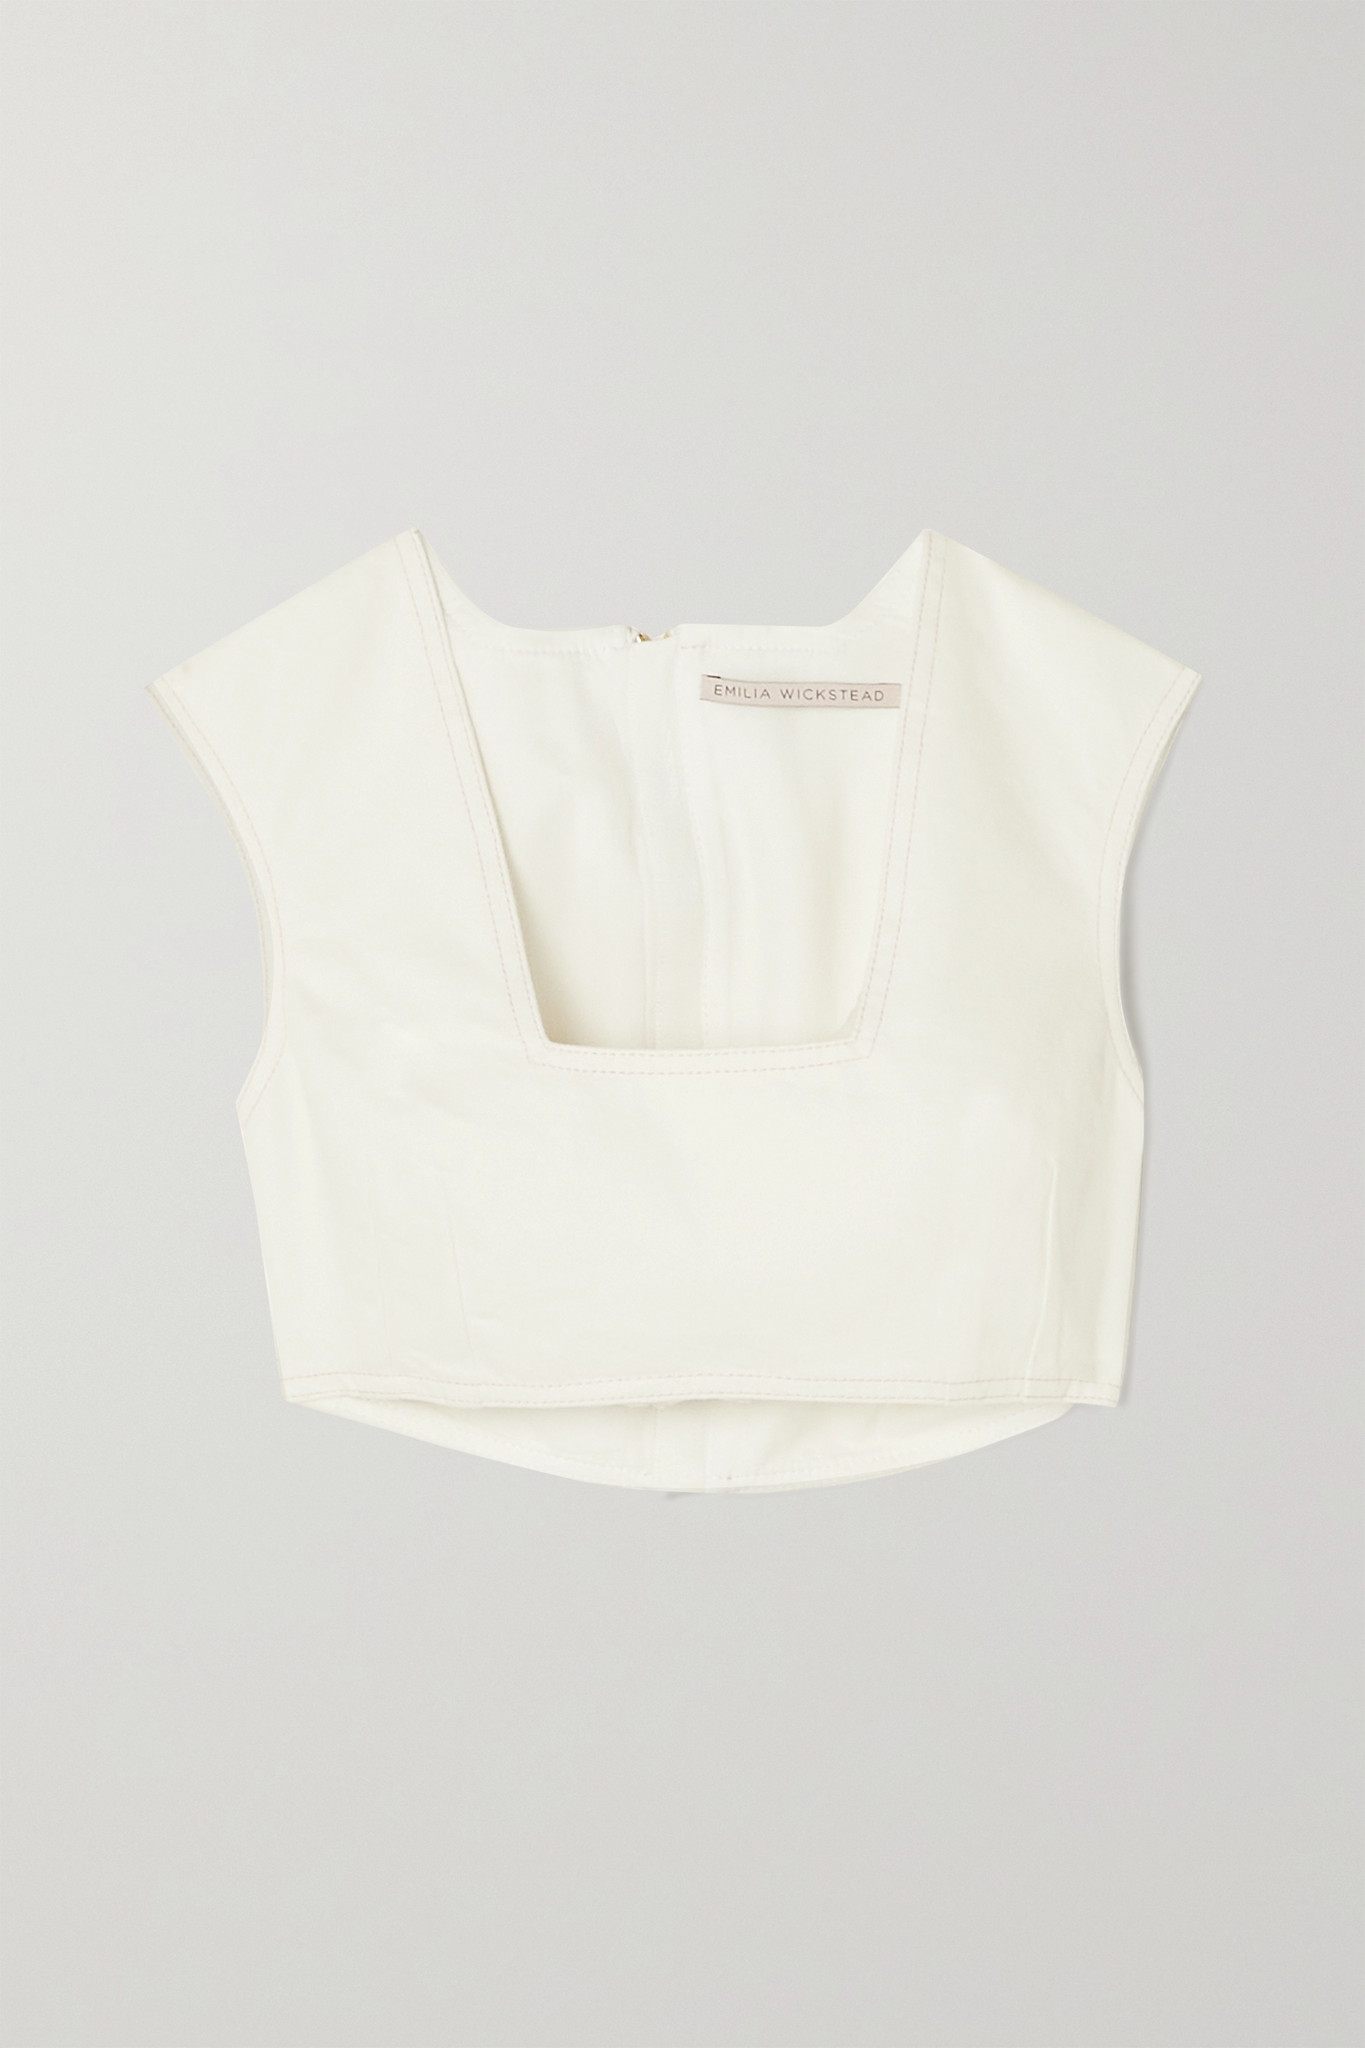 EMILIA WICKSTEAD - Saffa Cropped Denim Top - White - UK8